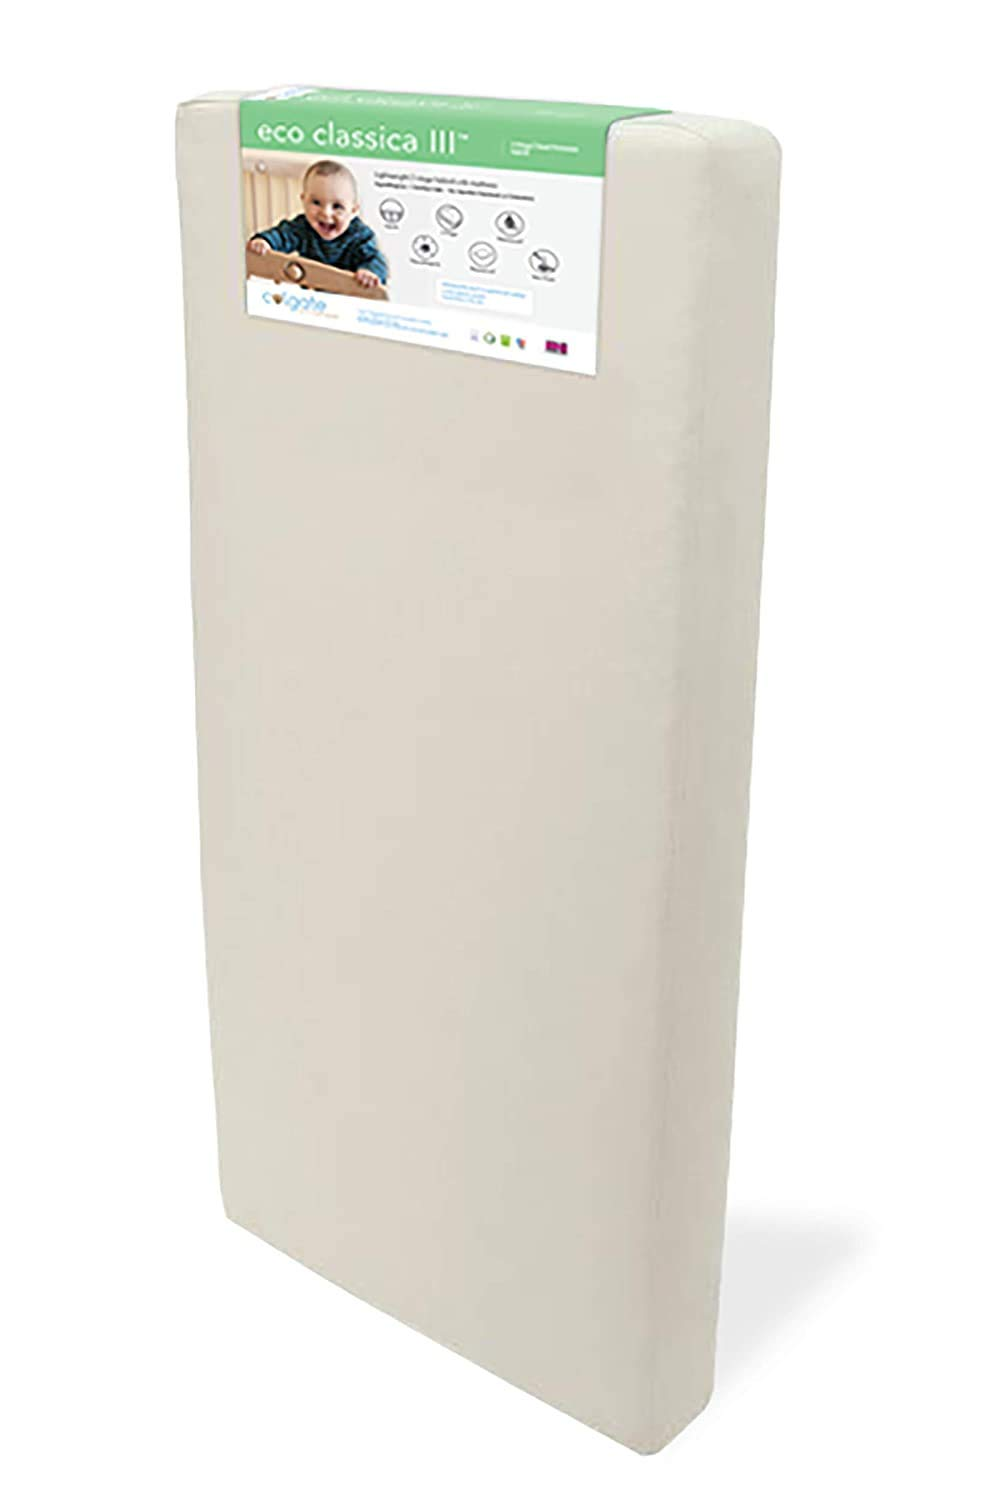 Eco Classica III 2-Stage Baby Matt Max 86% OFF by Mattress Toddler Colgate Surprise price